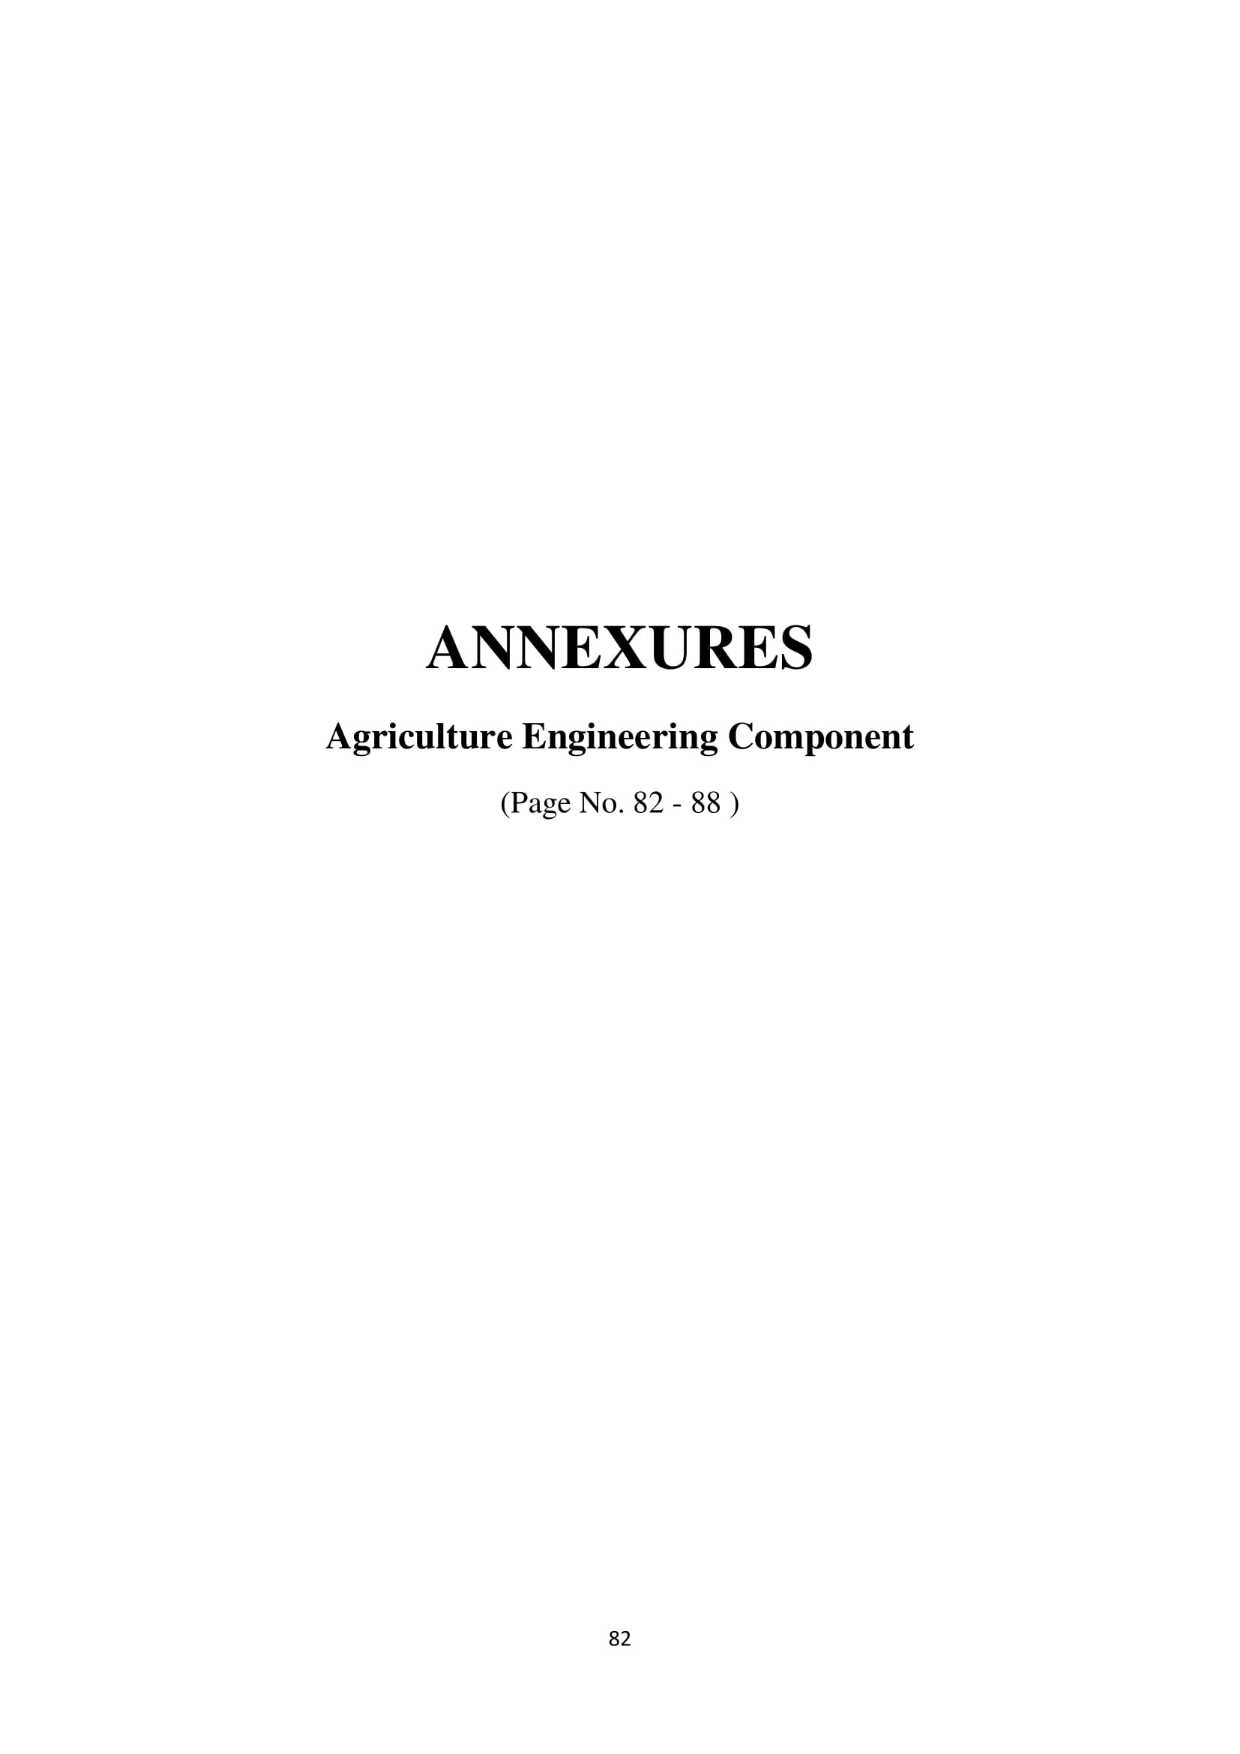 FINAL_ANNEXURES_FINAL_SWC_DAE_Final_annexures_April_24__2019-30